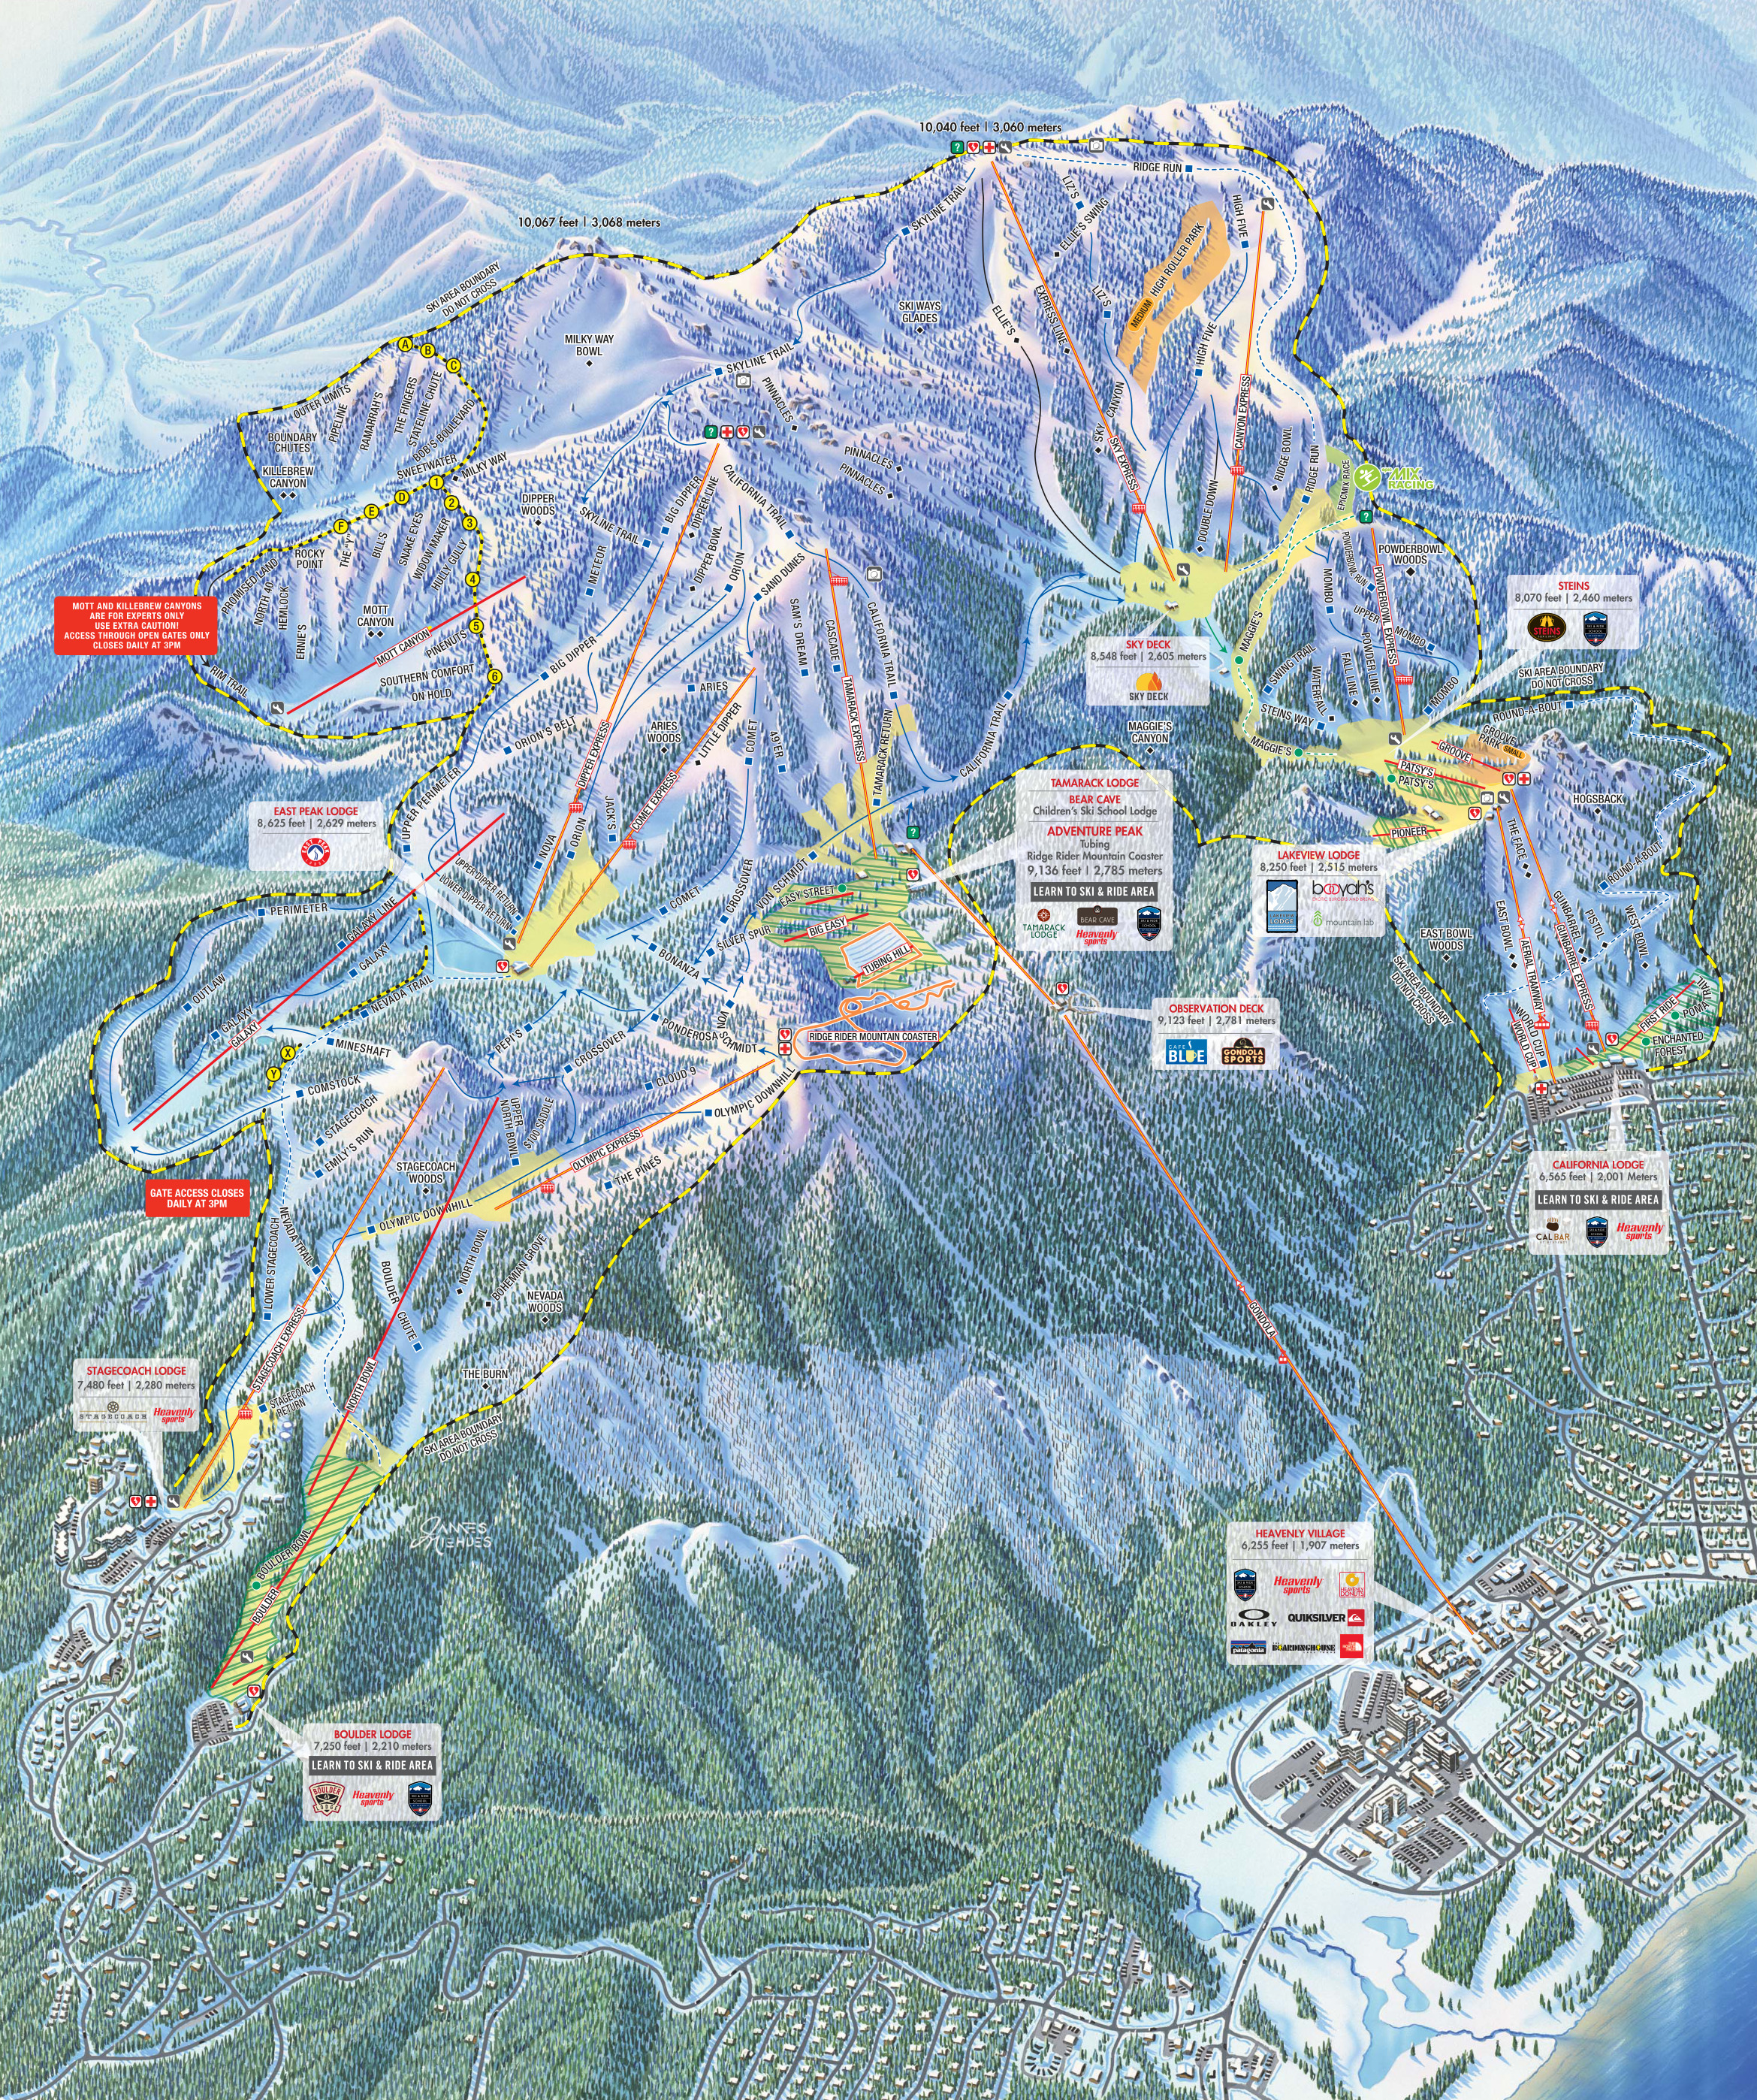 Heavenly Ski Resort - SkiMap.org on lake tahoe golf course map, lake tahoe mountain map, lake tahoe winter map, northstar resort tahoe map, lake tahoe casinos, lake tahoe snow, lake tahoe mapguide, hyatt regency lake tahoe resort map, lake tahoe points of interest map, squaw valley resort map, california ski areas map, lake tahoe skiing, lake tahoe national forest map, ski bc map, lake tahoe granlibakken resort, lake tahoe tourist map, lake tahoe sierra resort, lake tahoe airport map, christmas valley lake tahoe map, lake tahoe tee shirt,